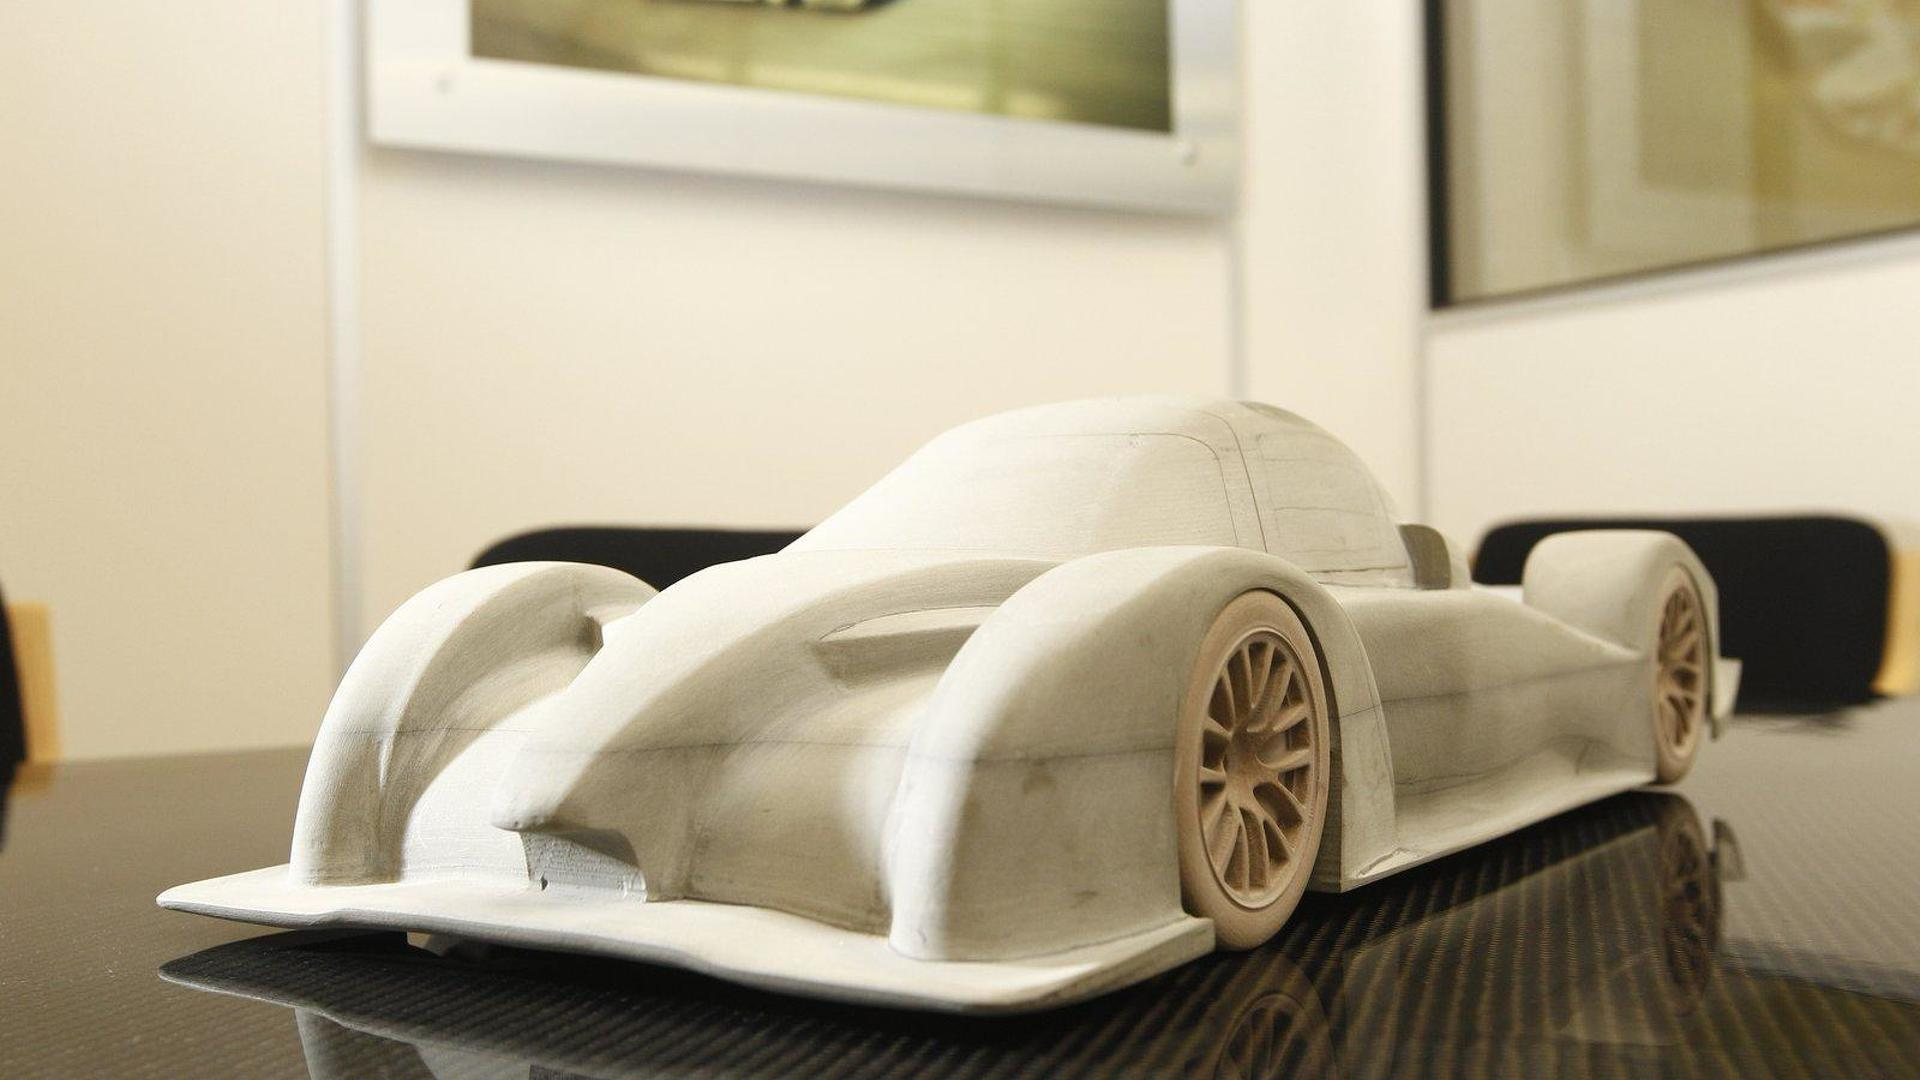 2014 Radical RXC Coupe first look by Sport Auto [video]